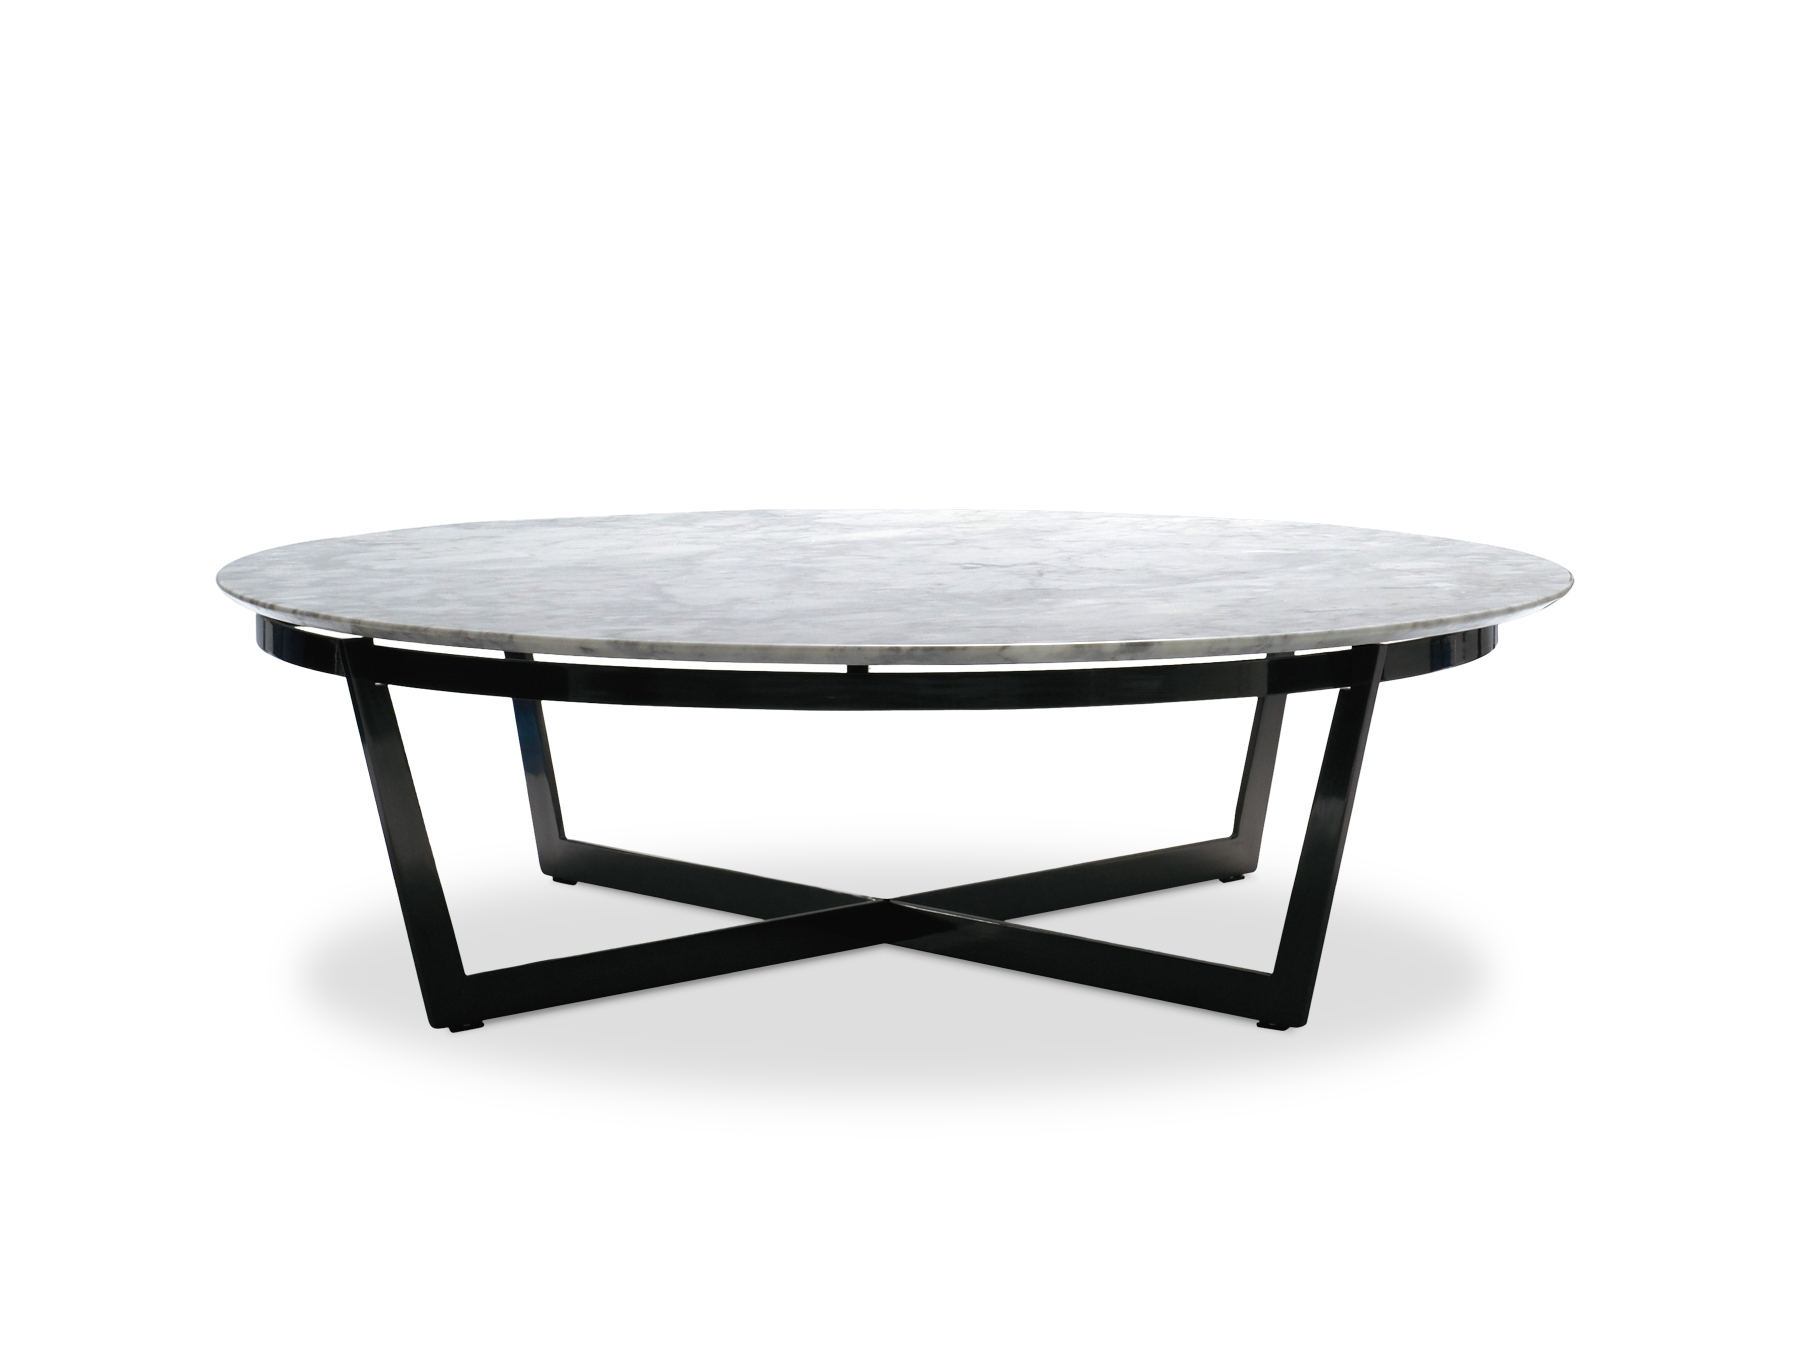 Camerich Element Round Coffee Table | Mckenzie & Willis with regard to Element Coffee Tables (Image 7 of 30)